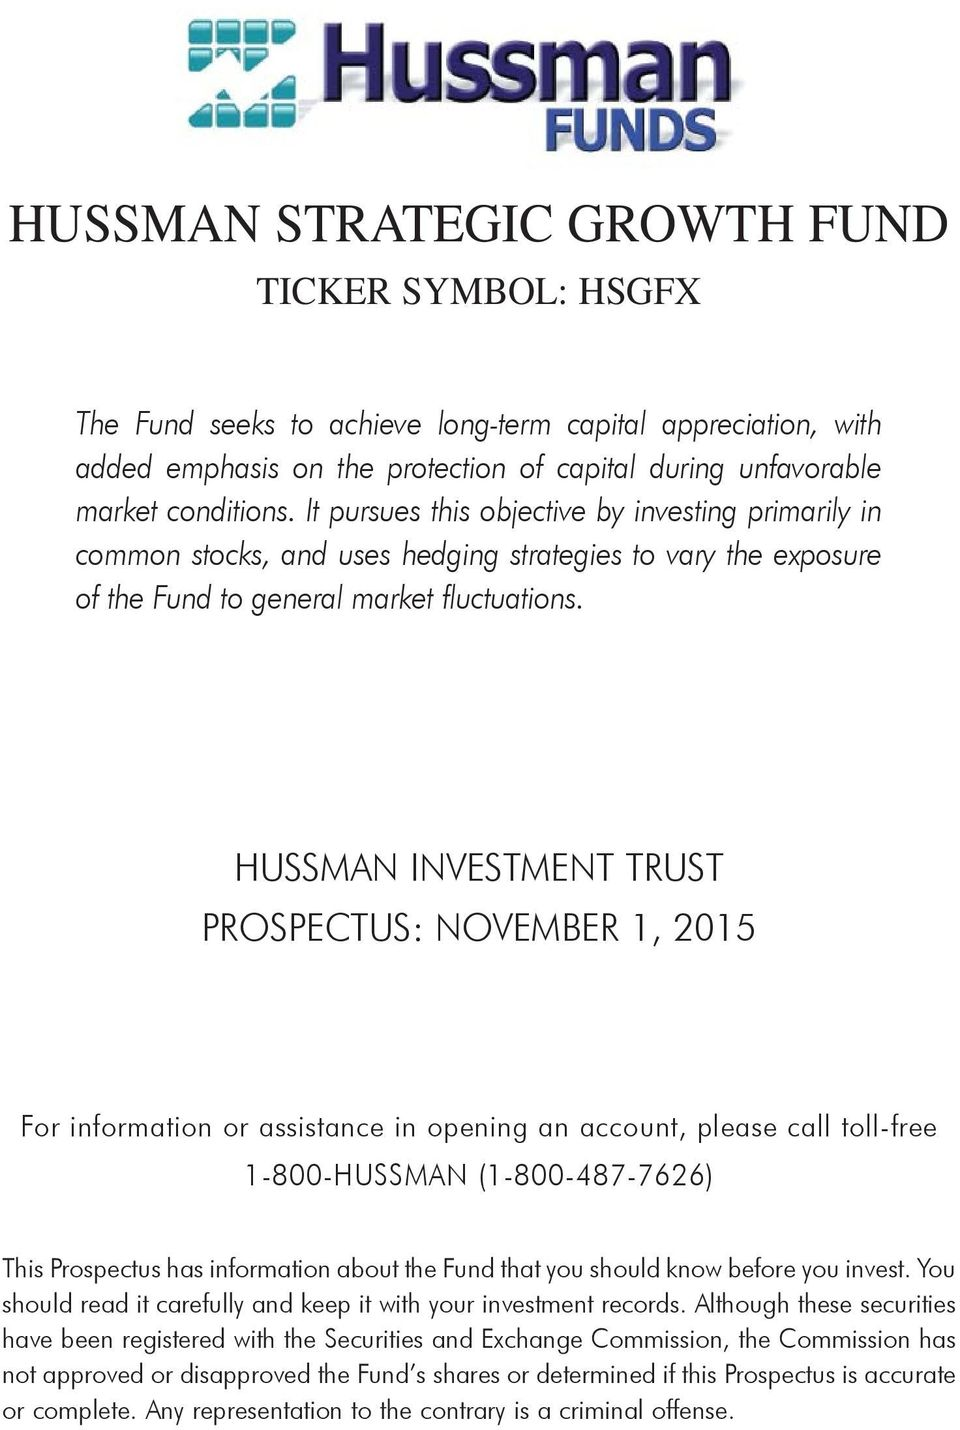 HUSSMAN INVESTMENT TRUST PROSPECTUS: NOVEMBER 1, 2015 For information or assistance in opening an account, please call toll-free 1-800-HUSSMAN (1-800-487-7626) This Prospectus has information about